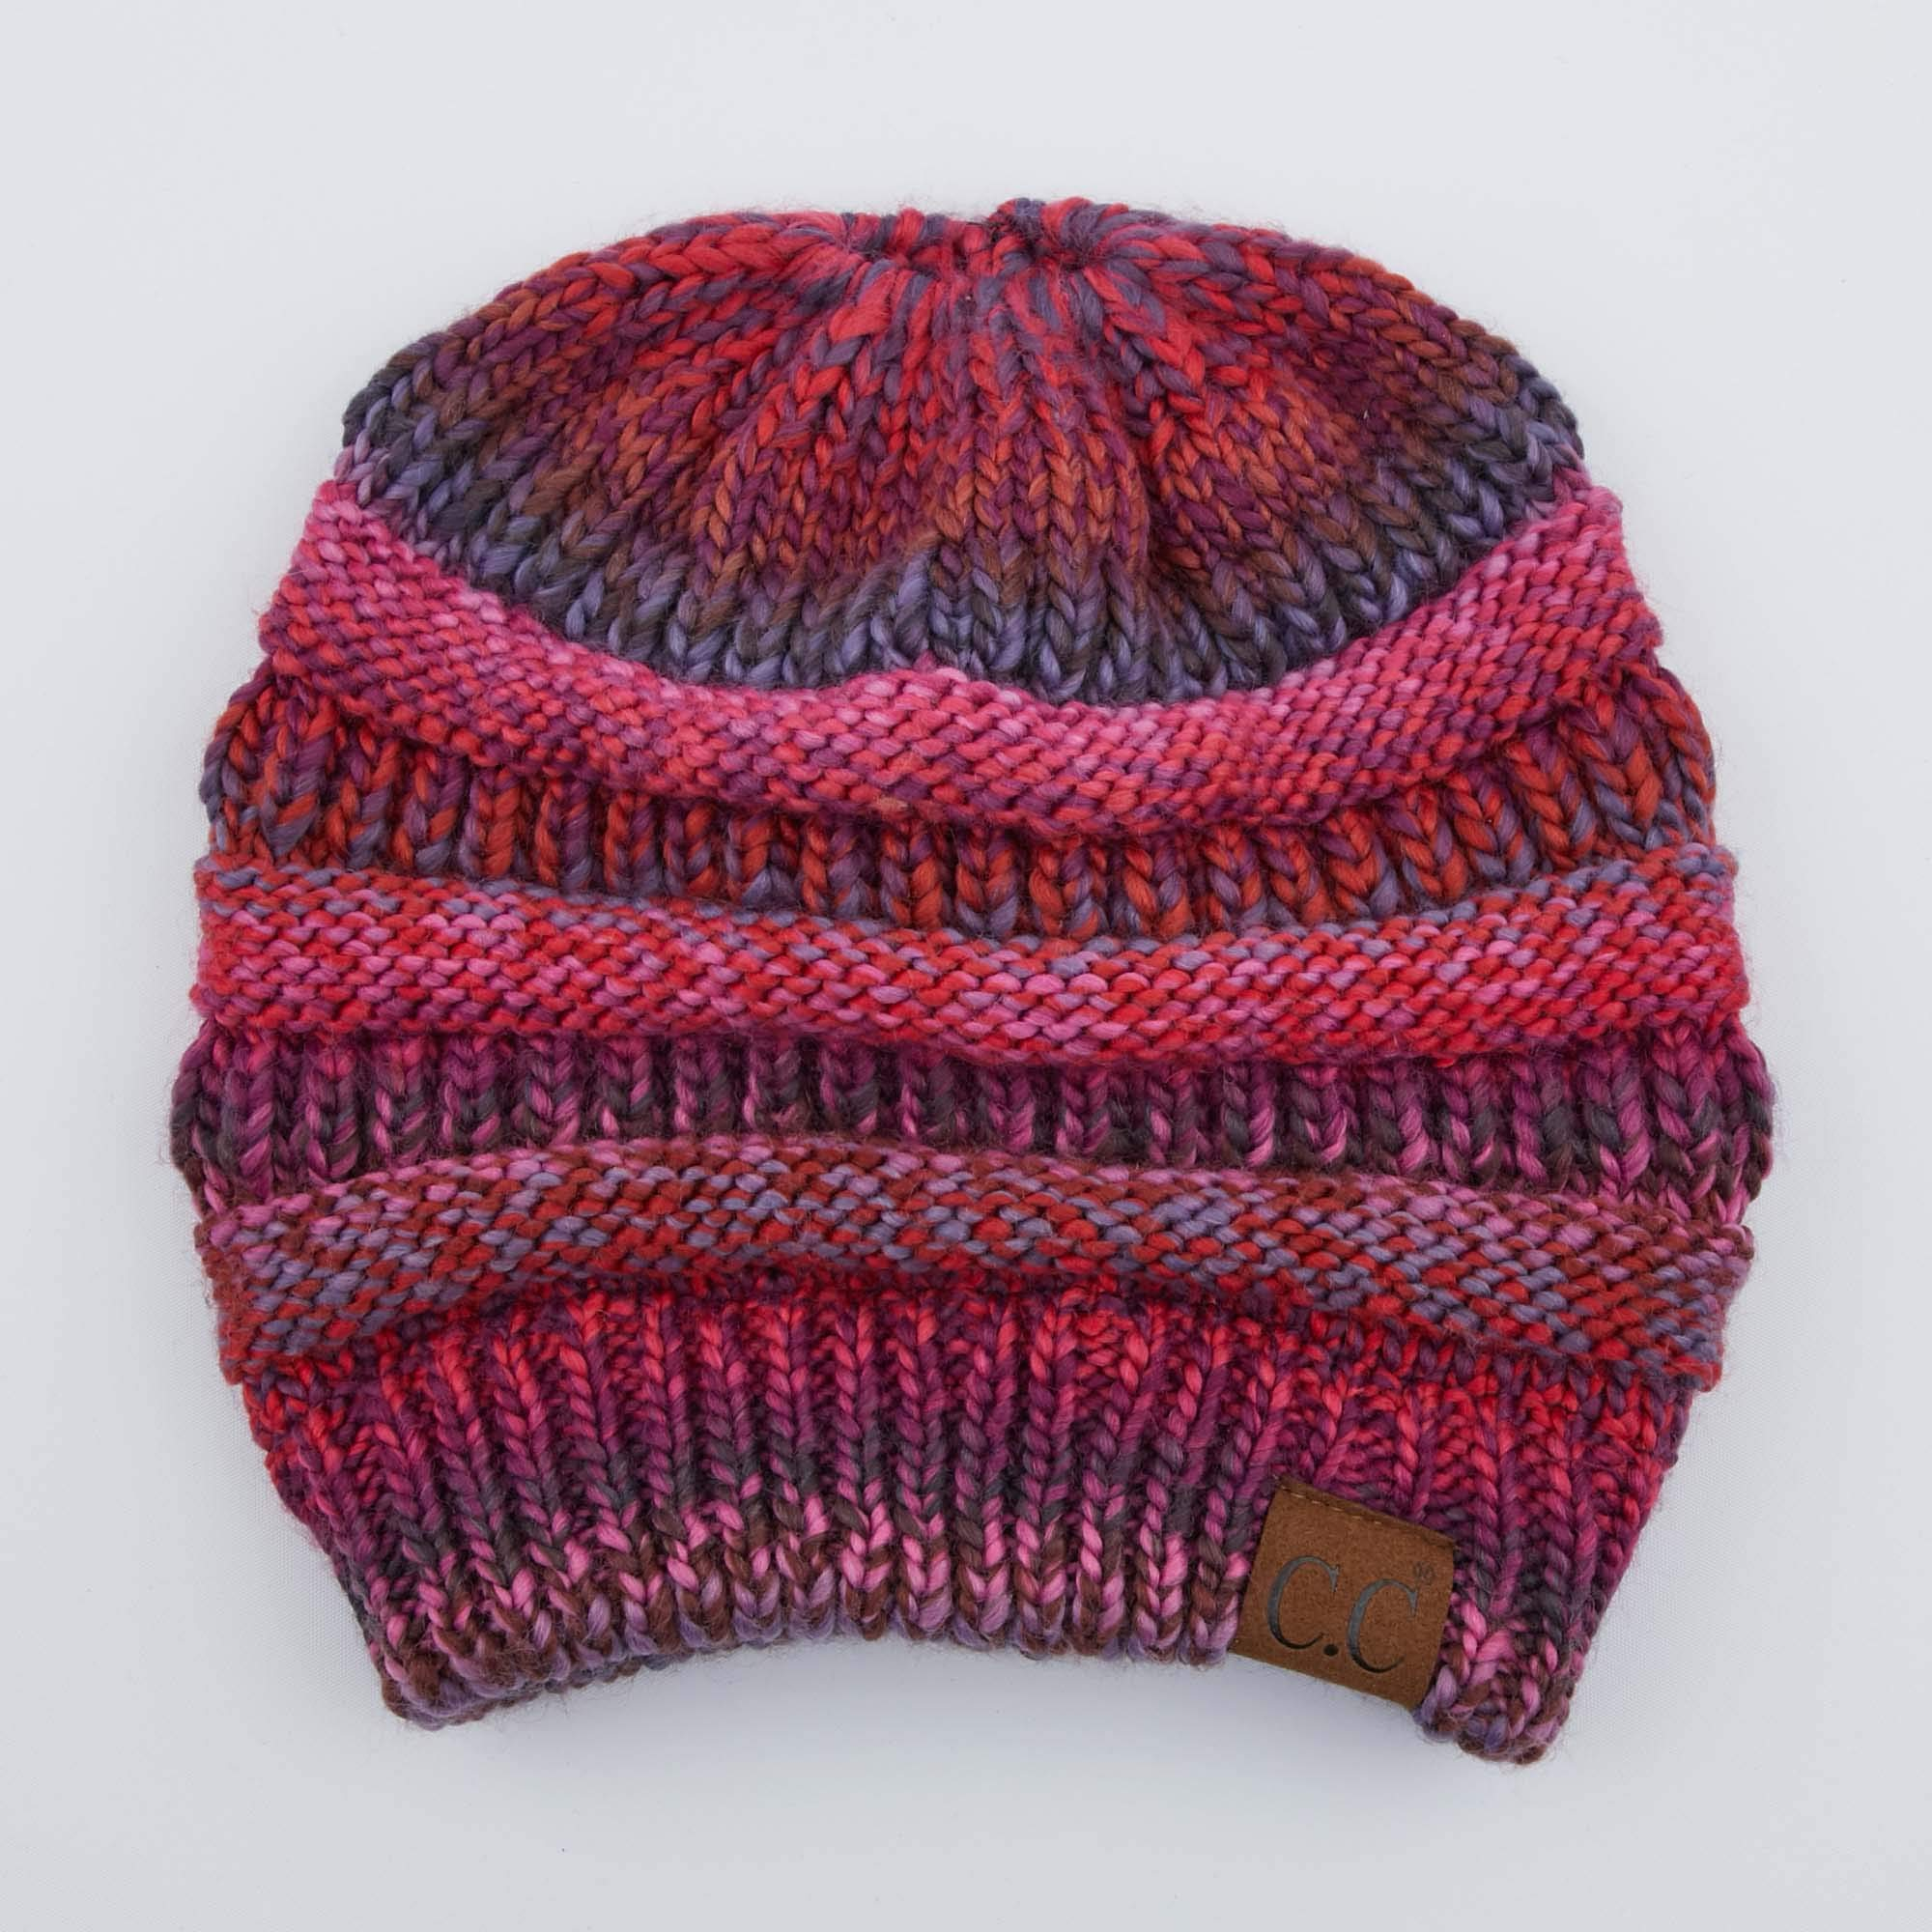 71a7e8775 C.C Exclusives Soft Stretch Cable Knit Messy Bun Ponytail Beanie Winter Hat  for Women (MB-20A)